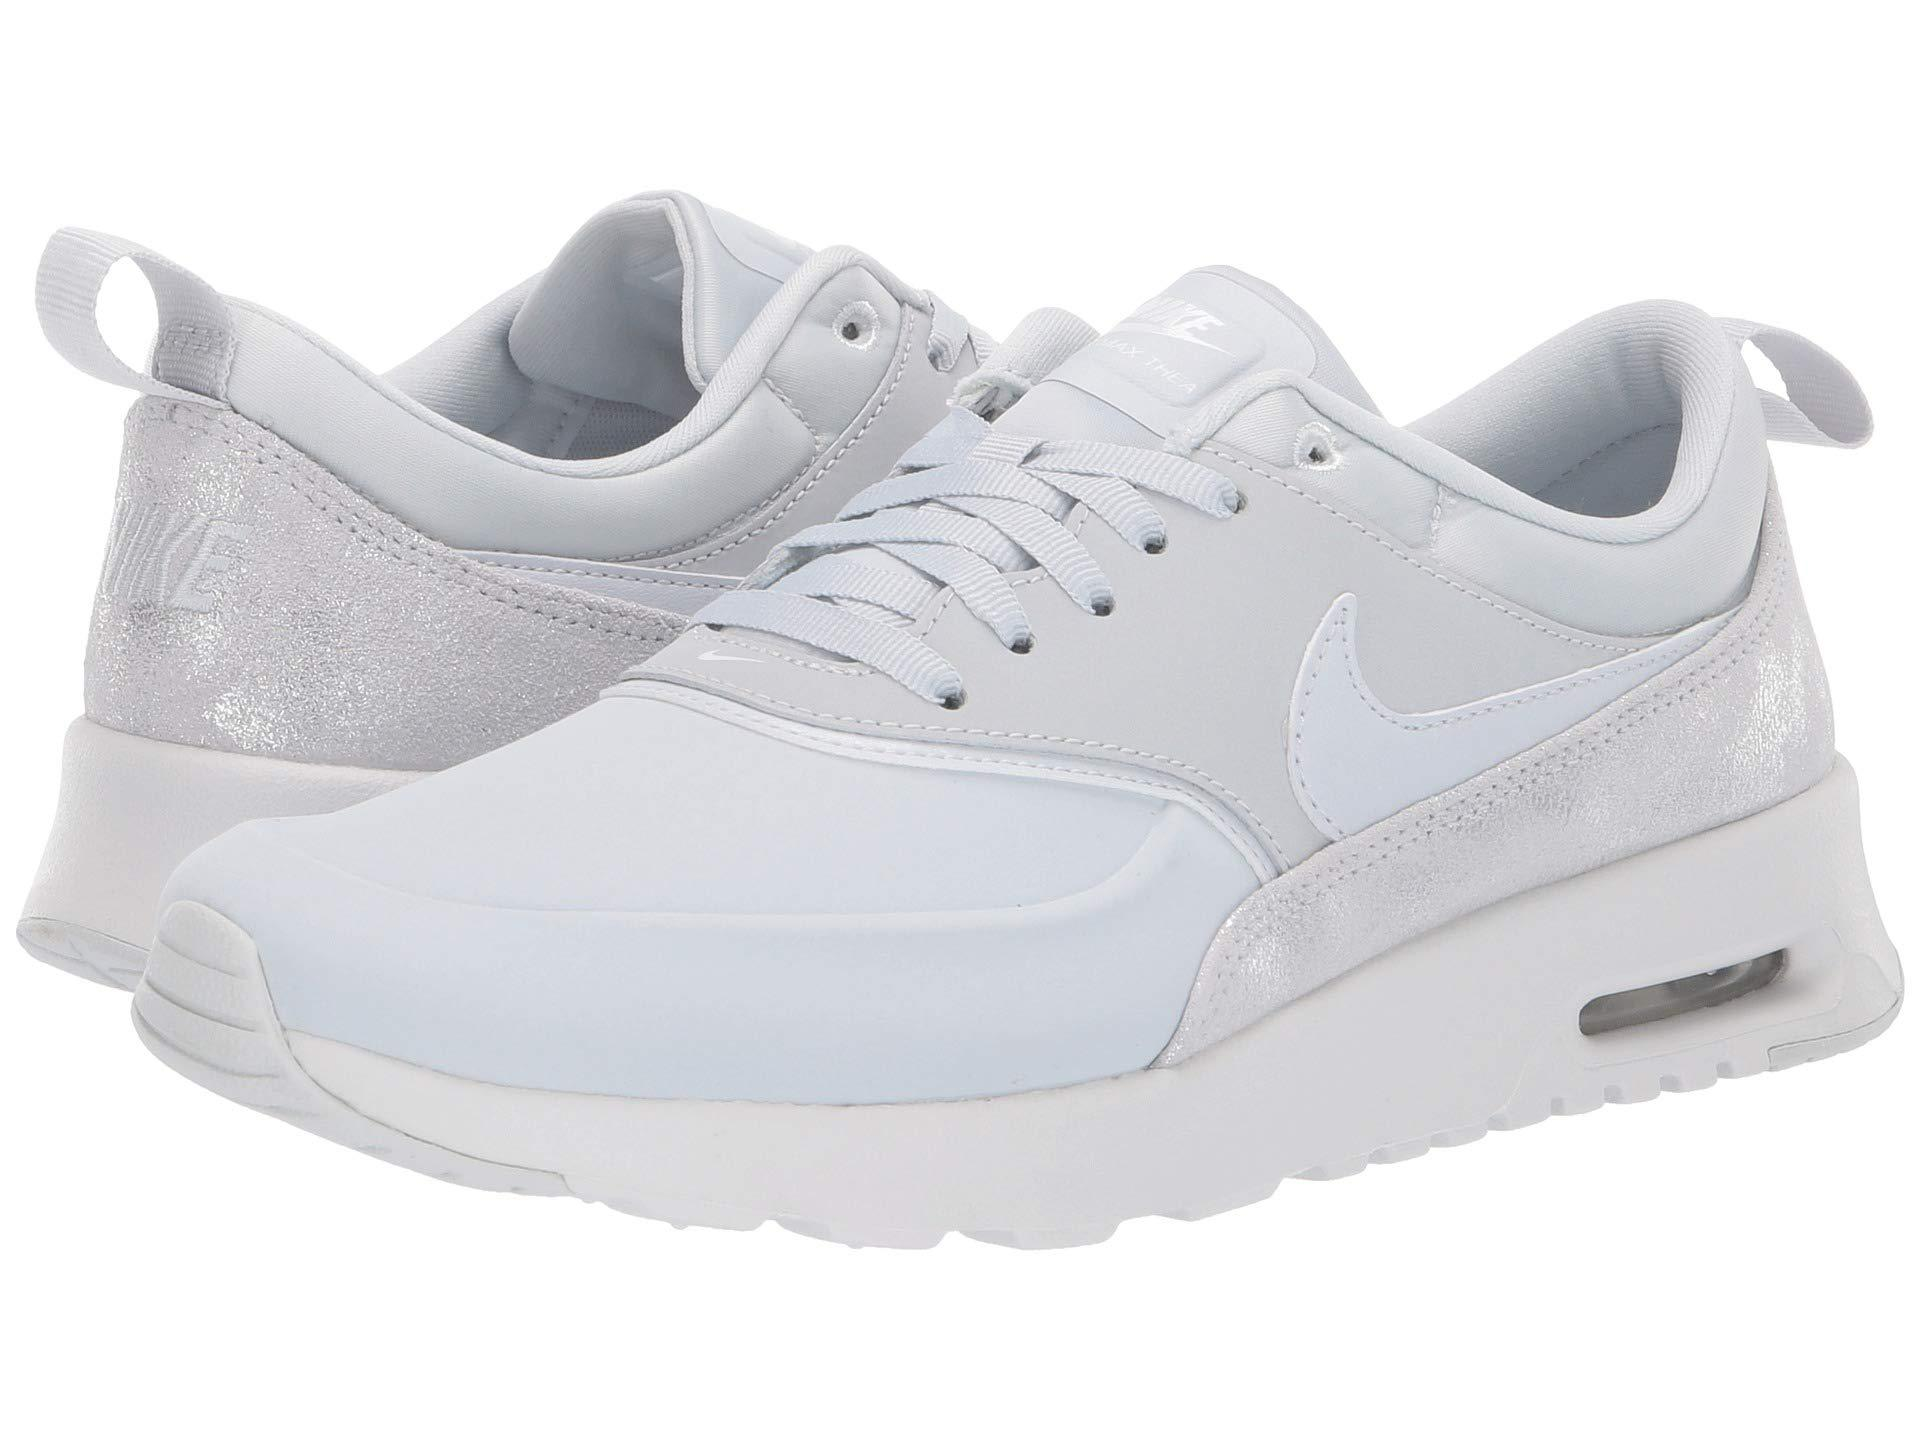 huge discount 3733a e9656 Nike. Air Max Thea Premium (pure Platinum pure Platinum summit White) Women s  Shoes